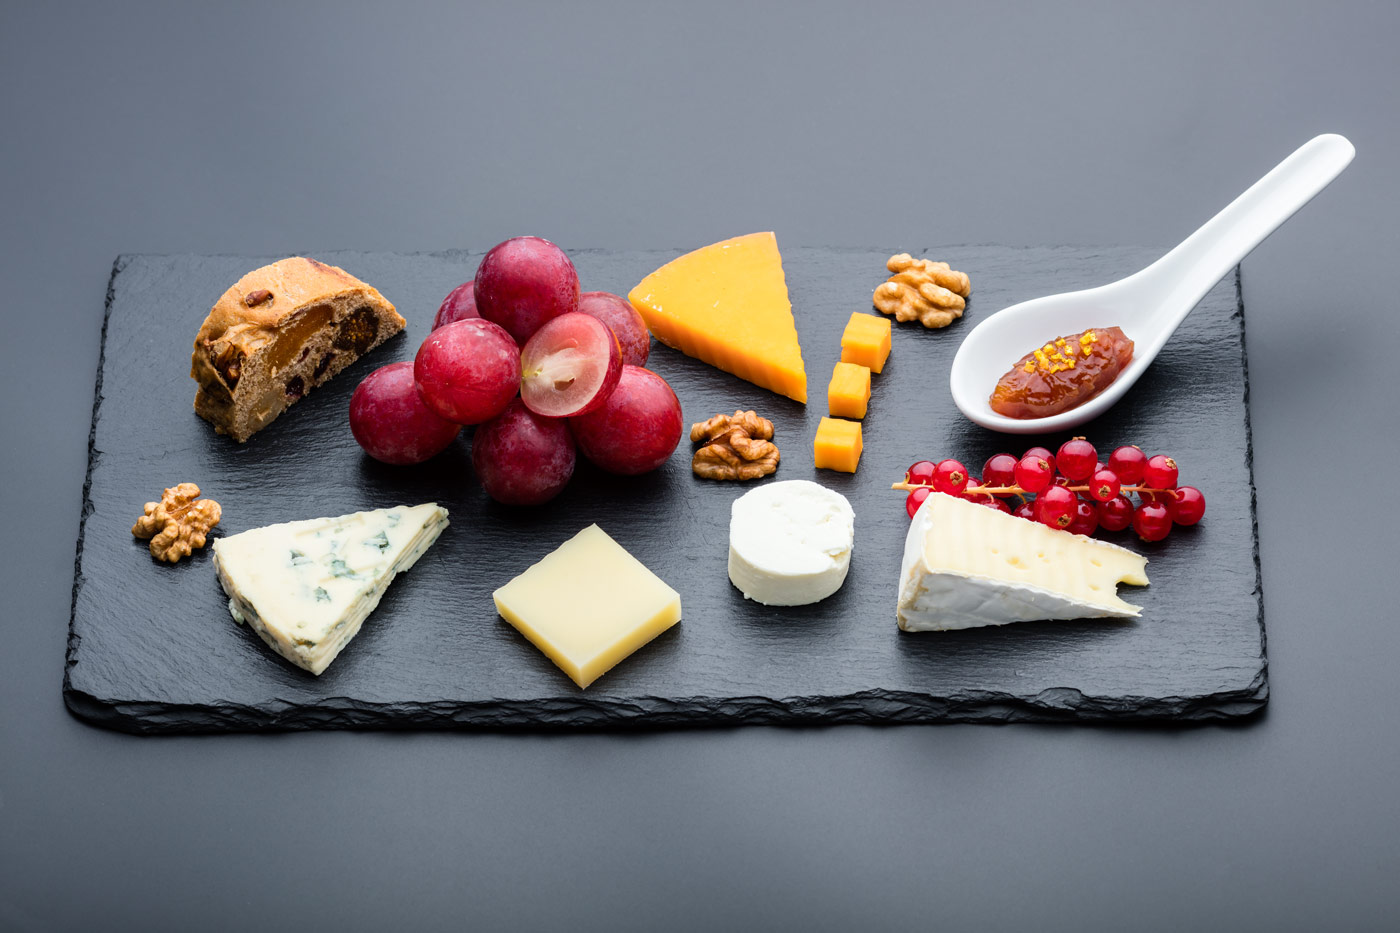 Plate with desert, cheese, grapes and bread